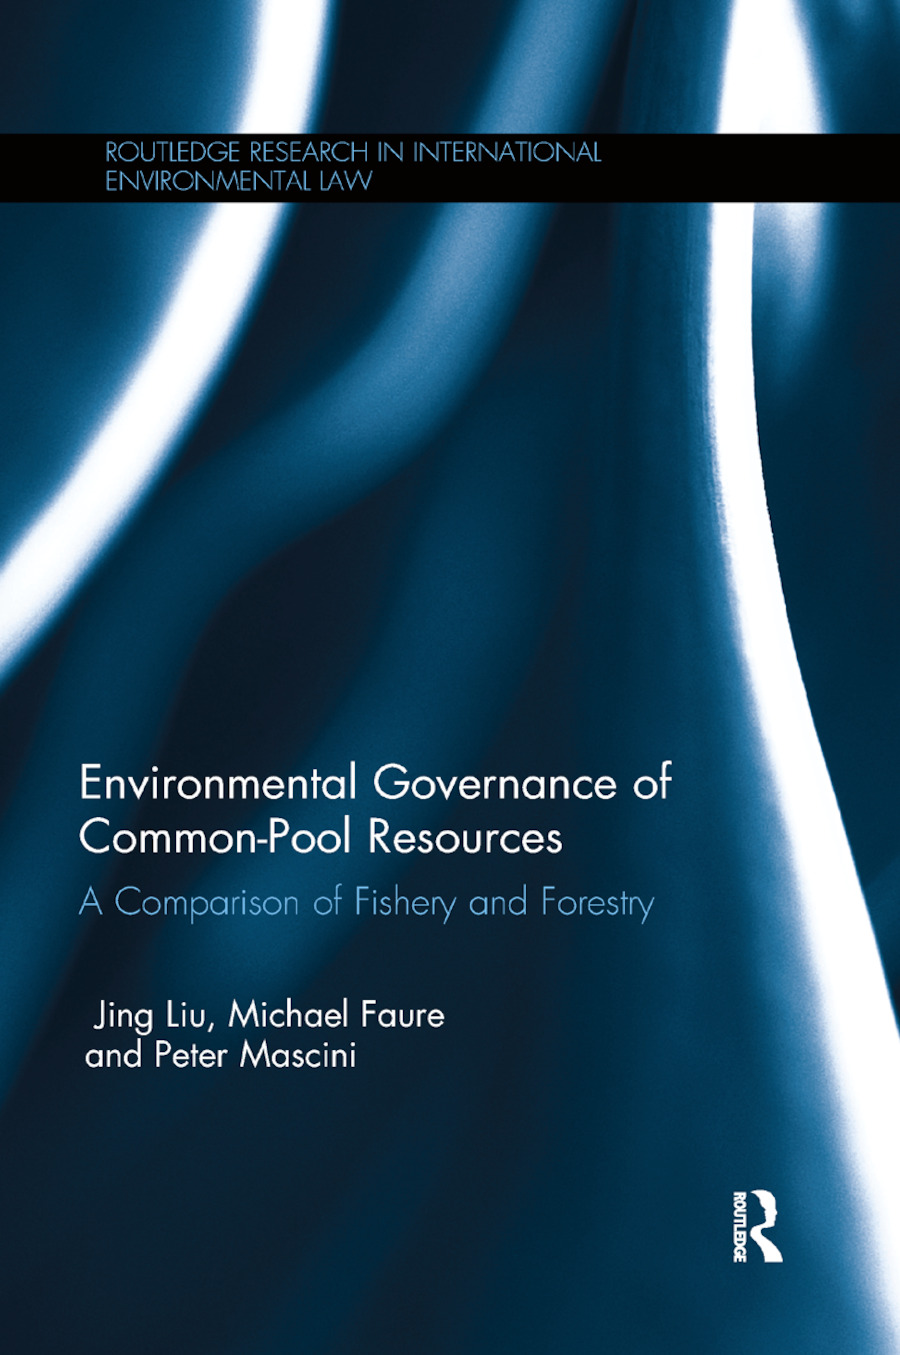 Environmental Governance and Common Pool Resources: A Comparison of Fishery and Forestry book cover